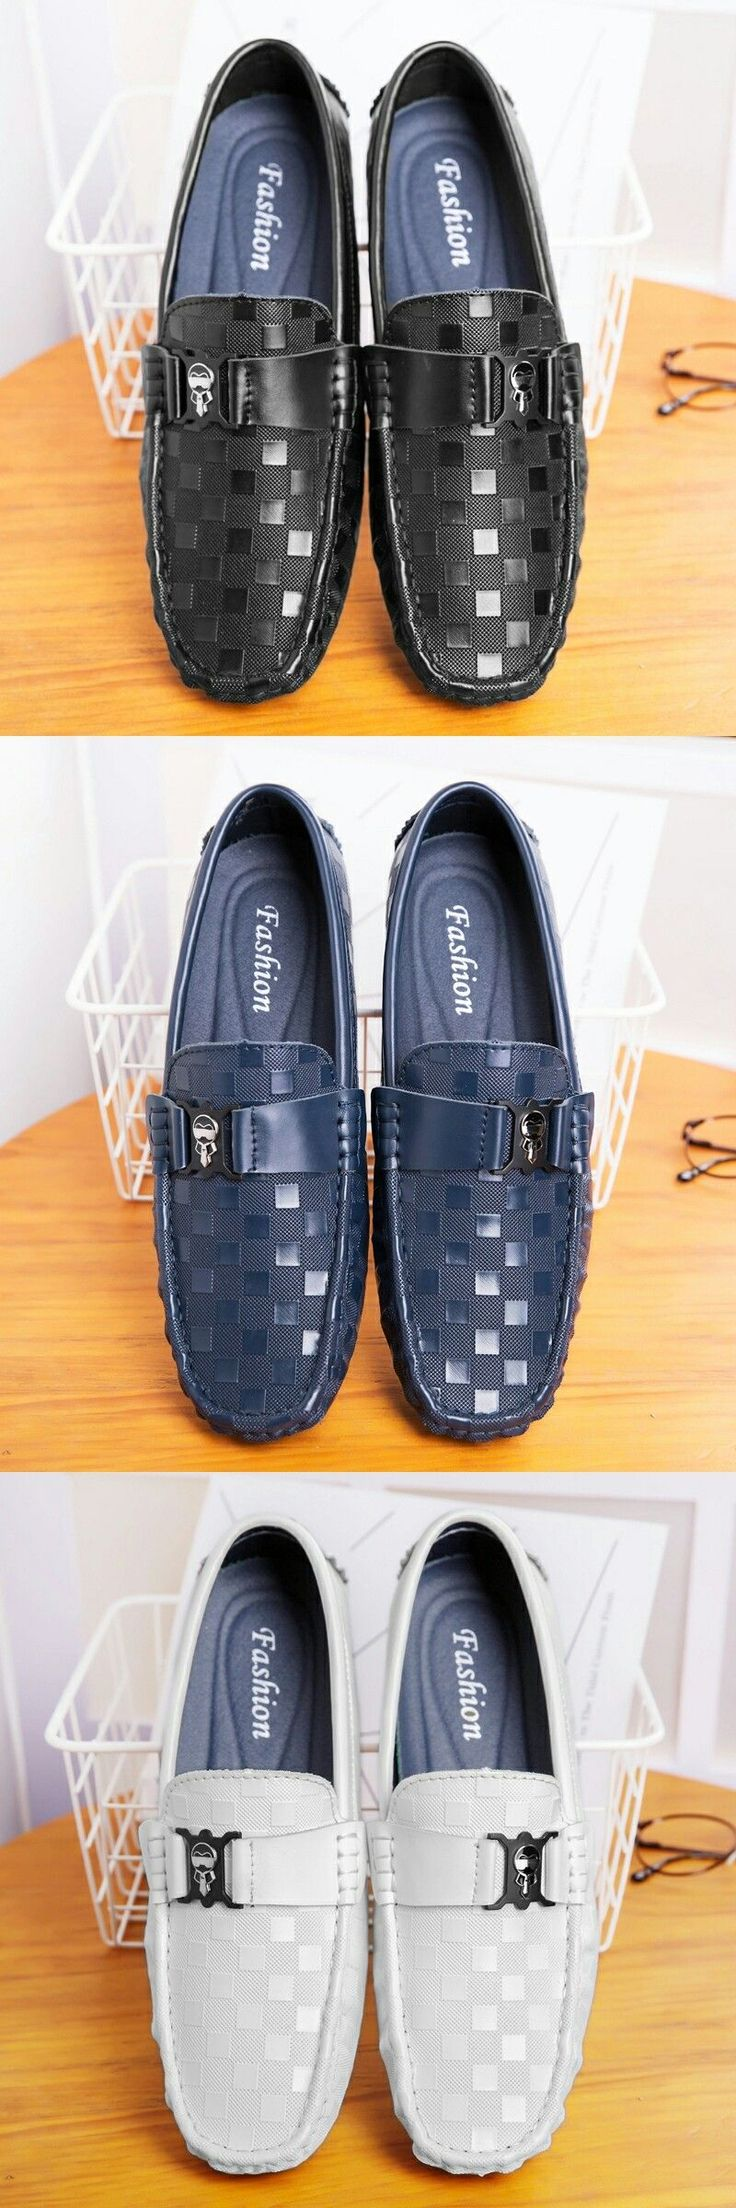 US $ Prelesty Italian Style Men Shoes Leather Casual Driving Loafer - https://sorihe.com/mensshoes/2018/03/10/us-prelesty-italian-style-men-shoes-leather-casual-driving-loafer-2/